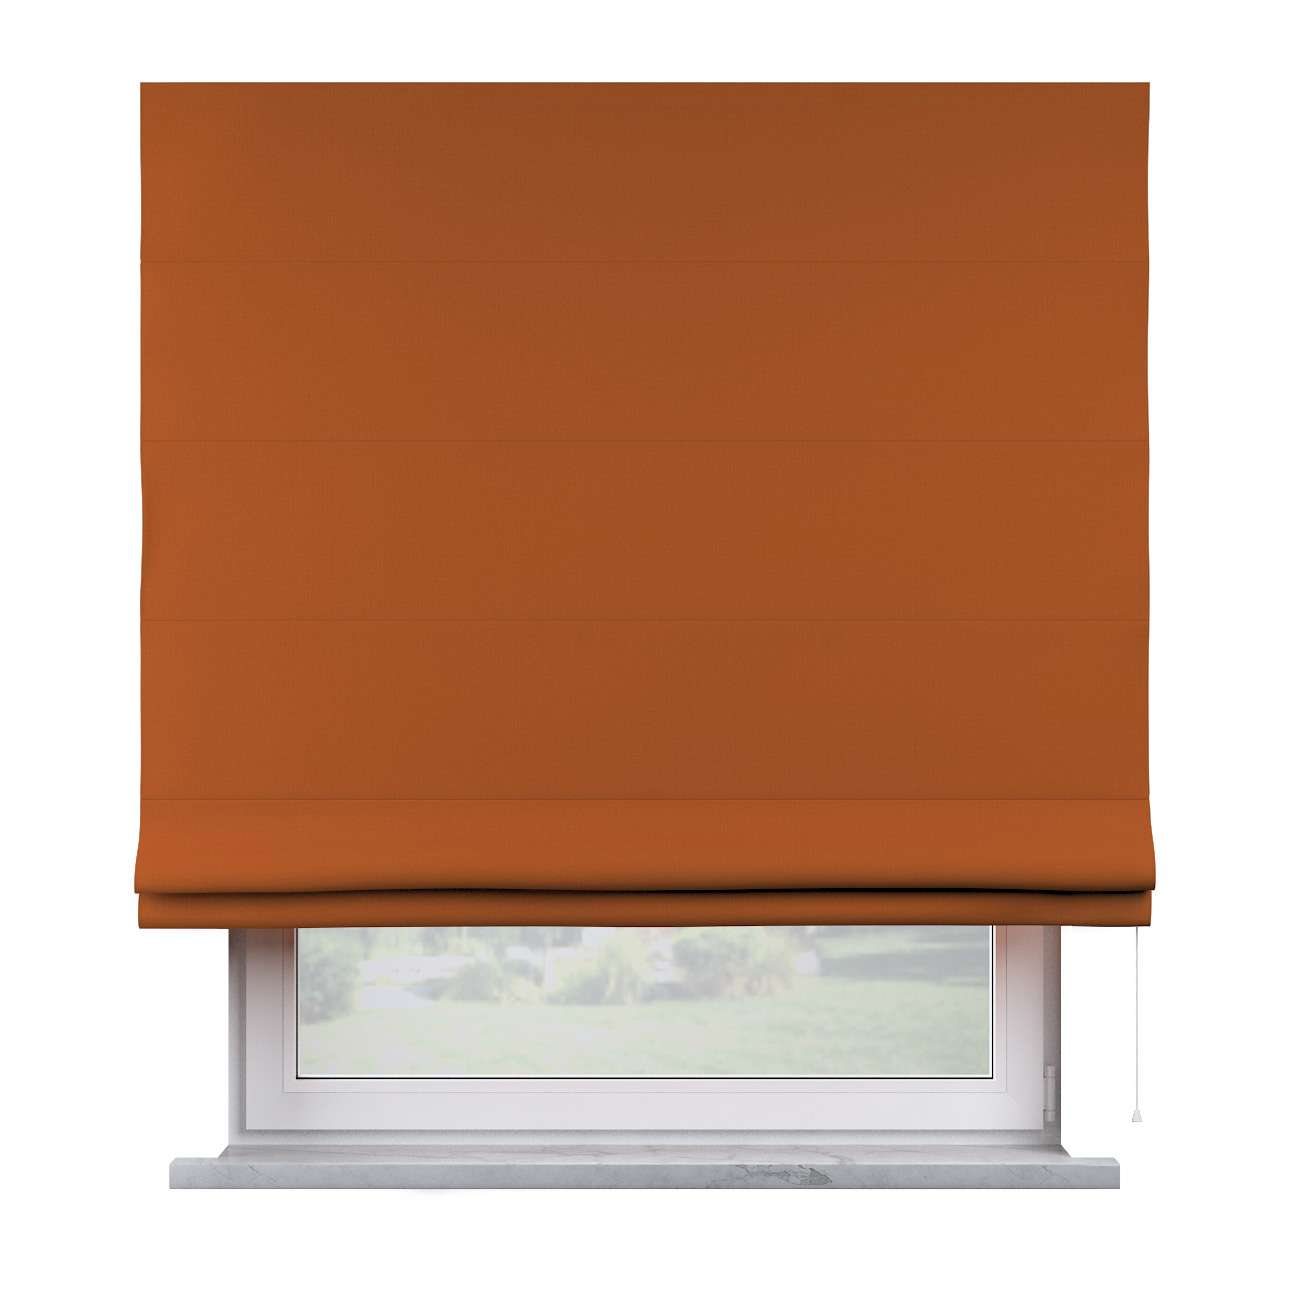 Billie roman blind in collection Cotton Story, fabric: 702-42